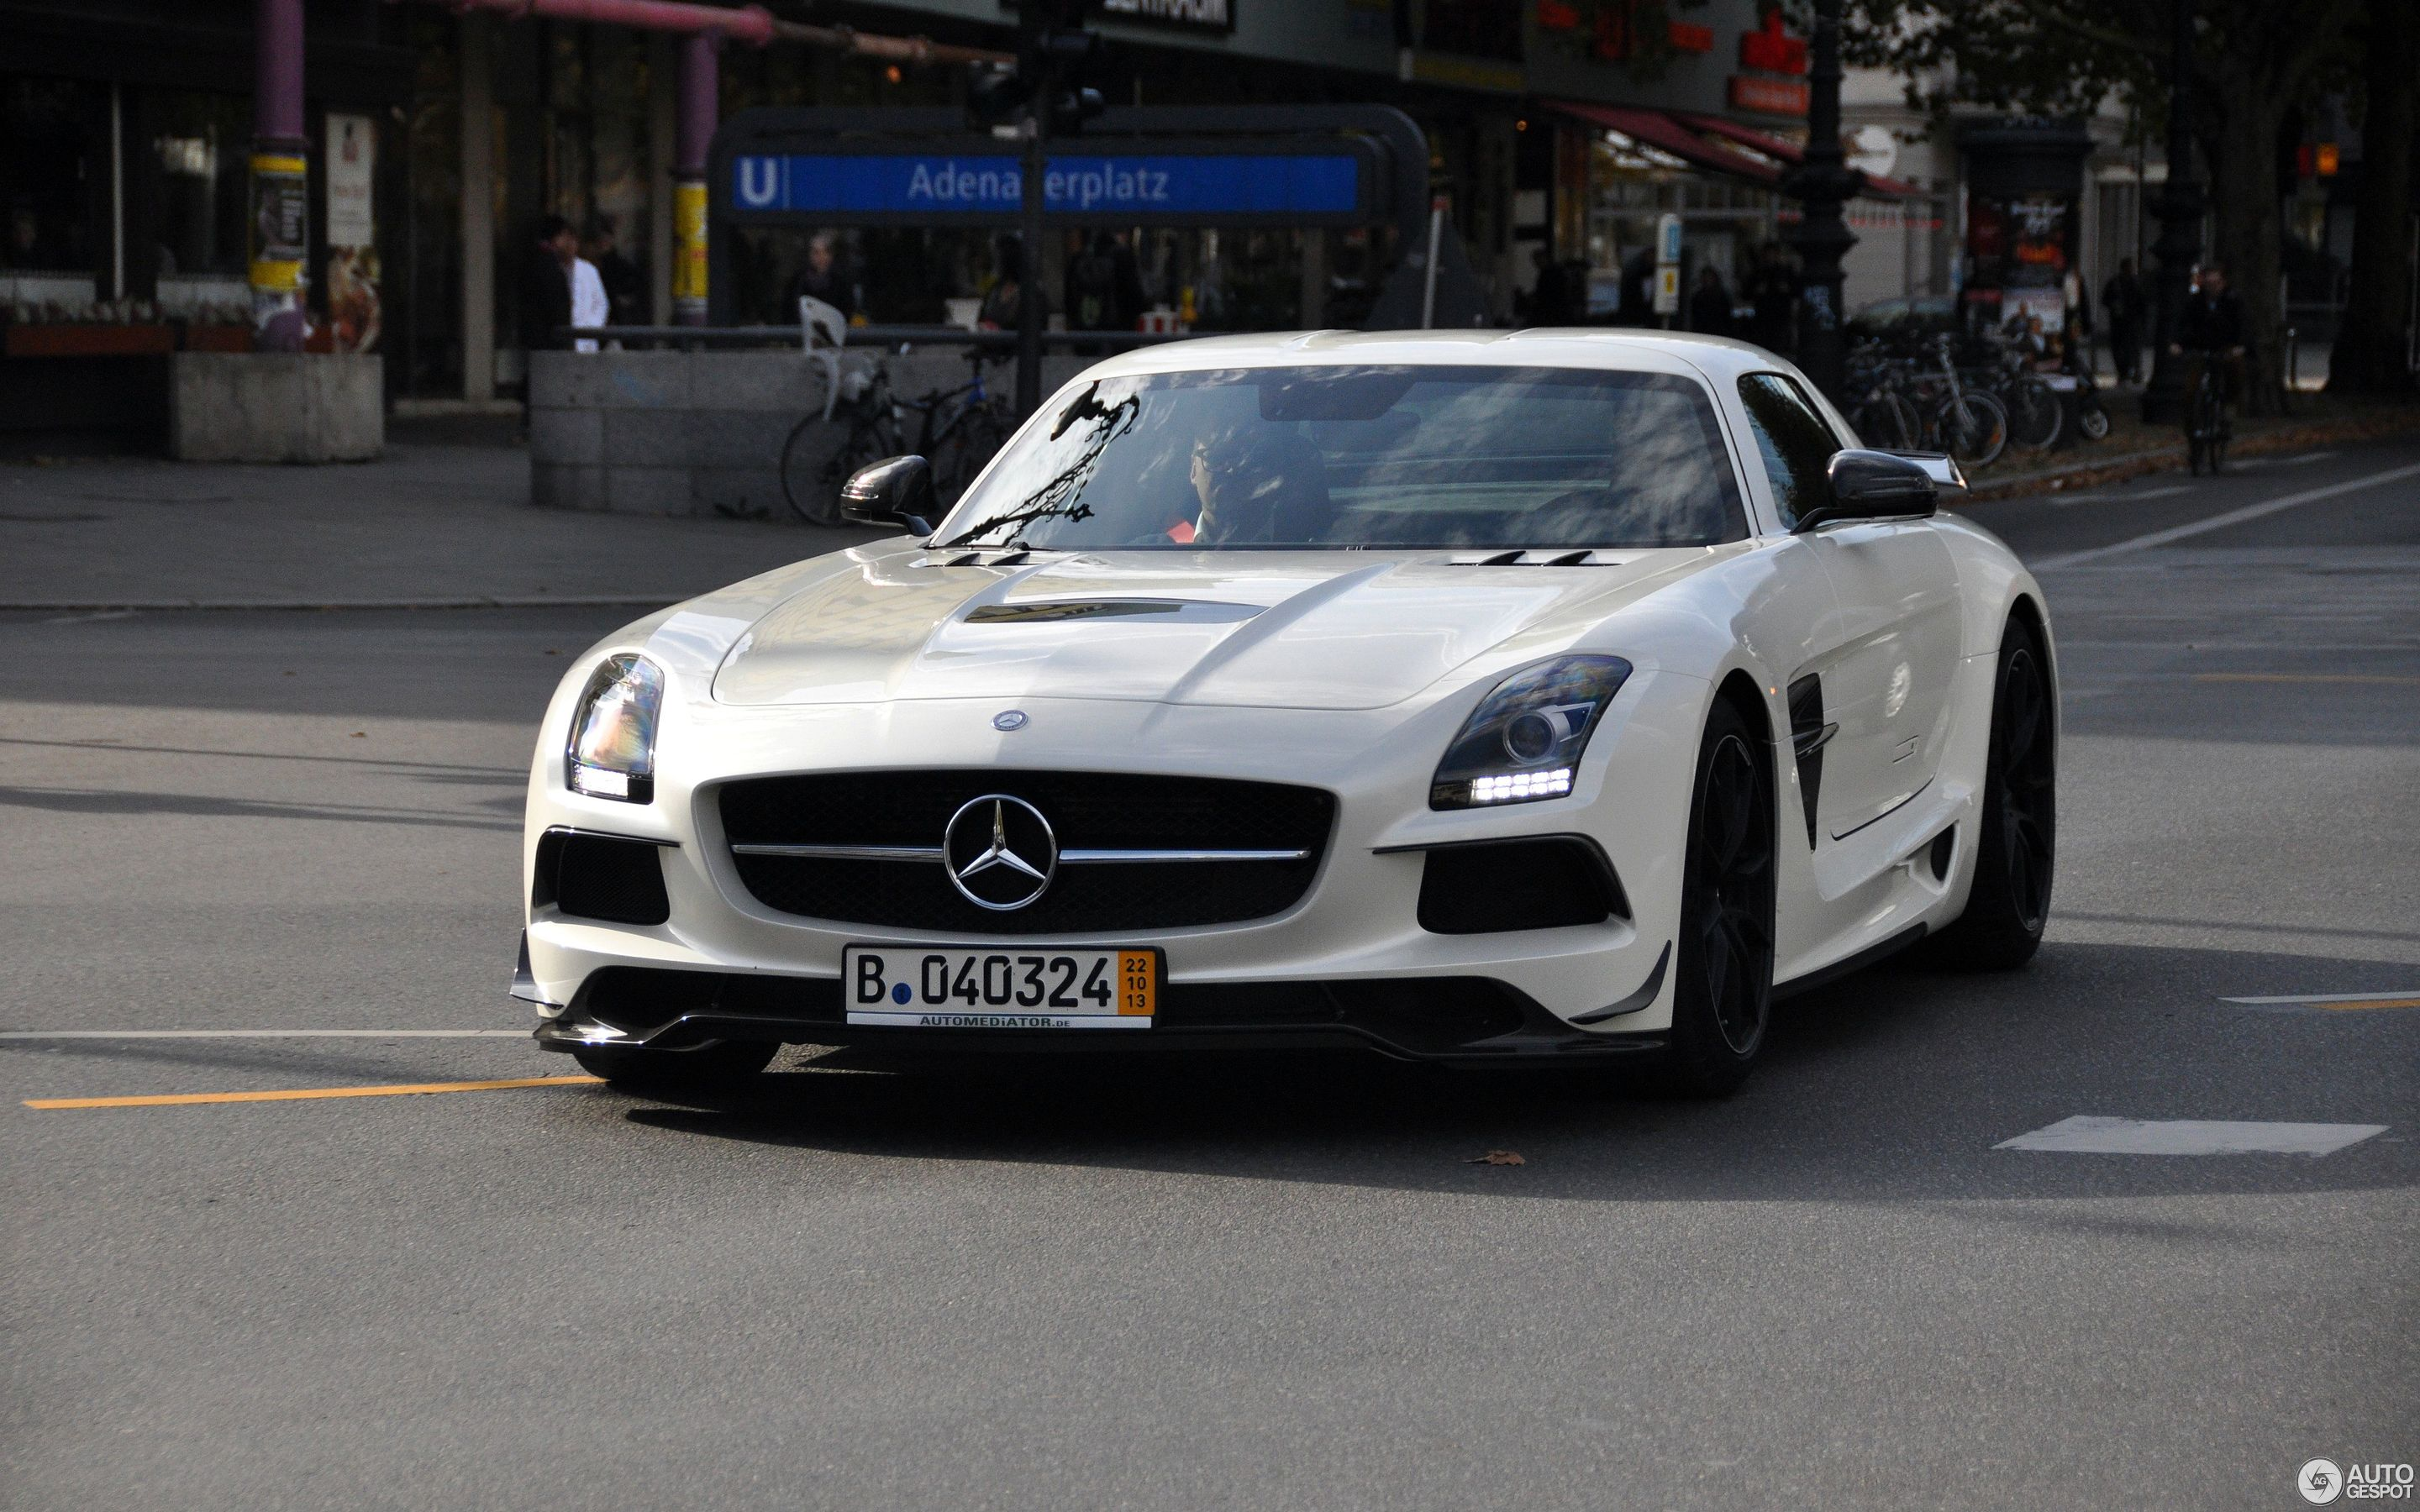 Mercedes Benz SLS AMG Black Series 18 November 2013 Autogespot